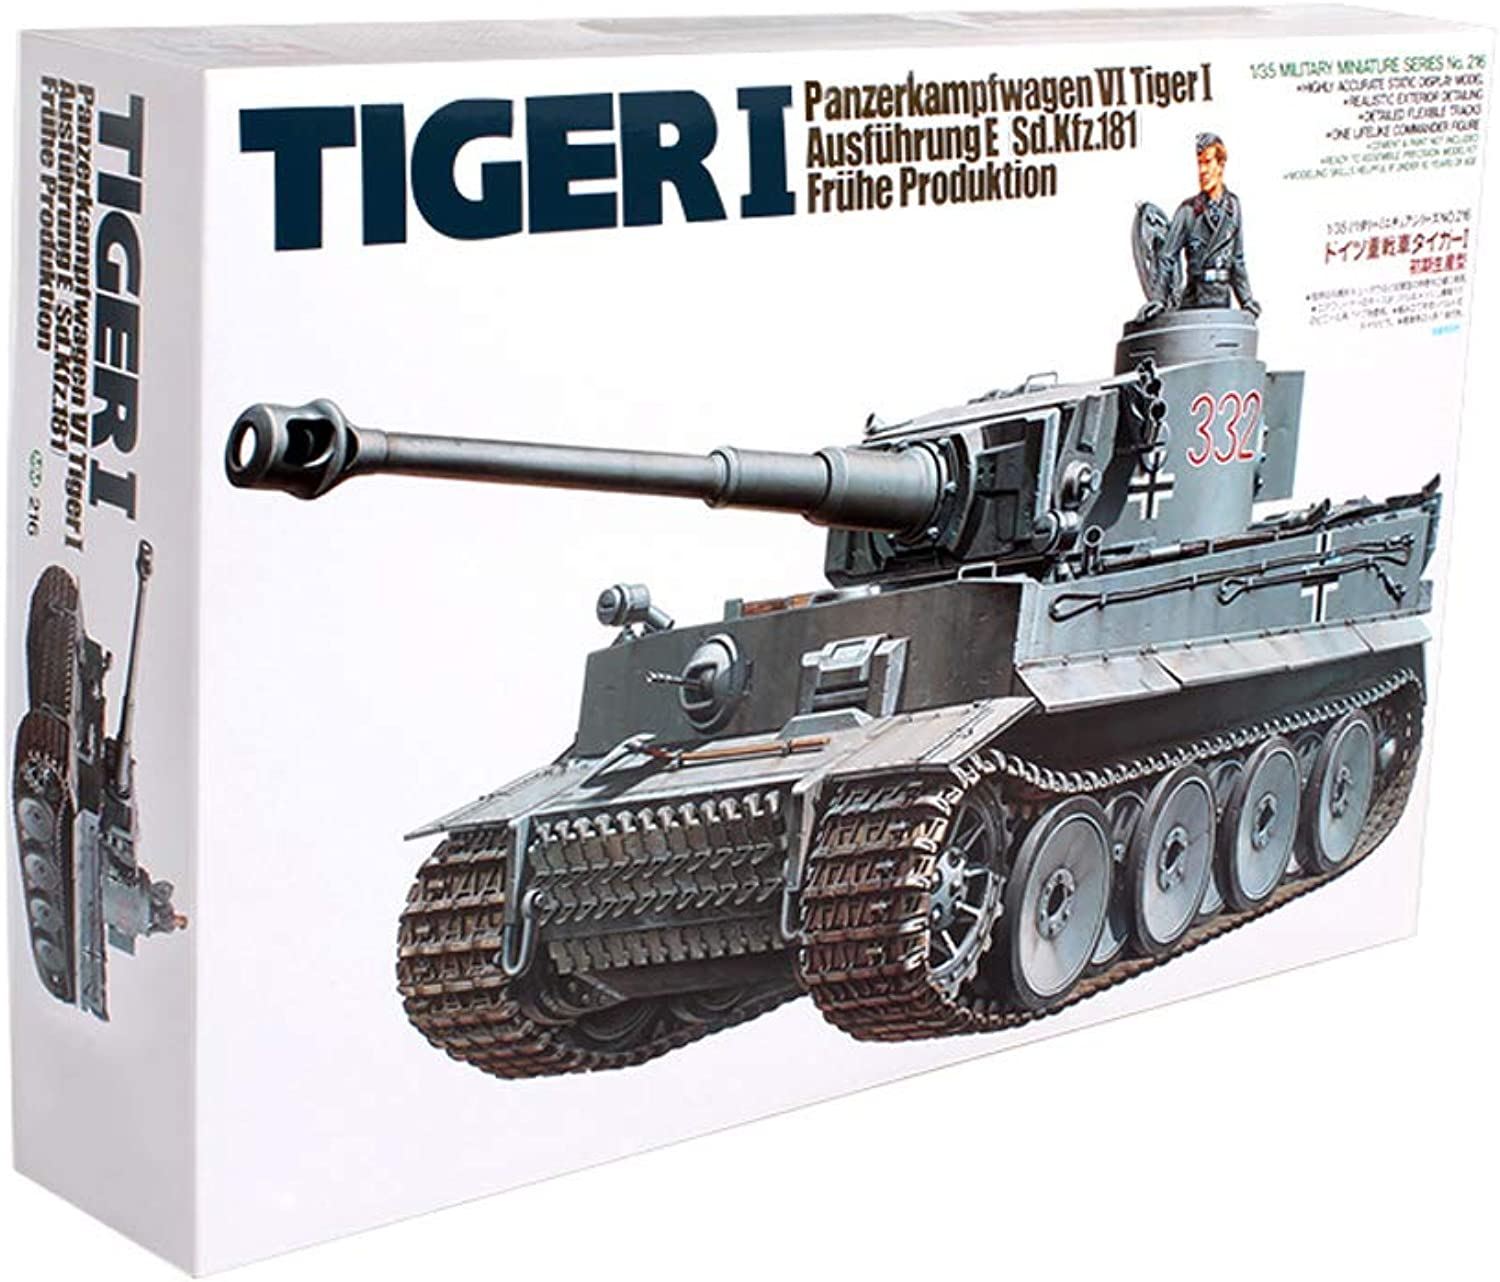 3D puzzle tiger tank model assembly   24.15  10.6 cm (without pigments, glue and tools)